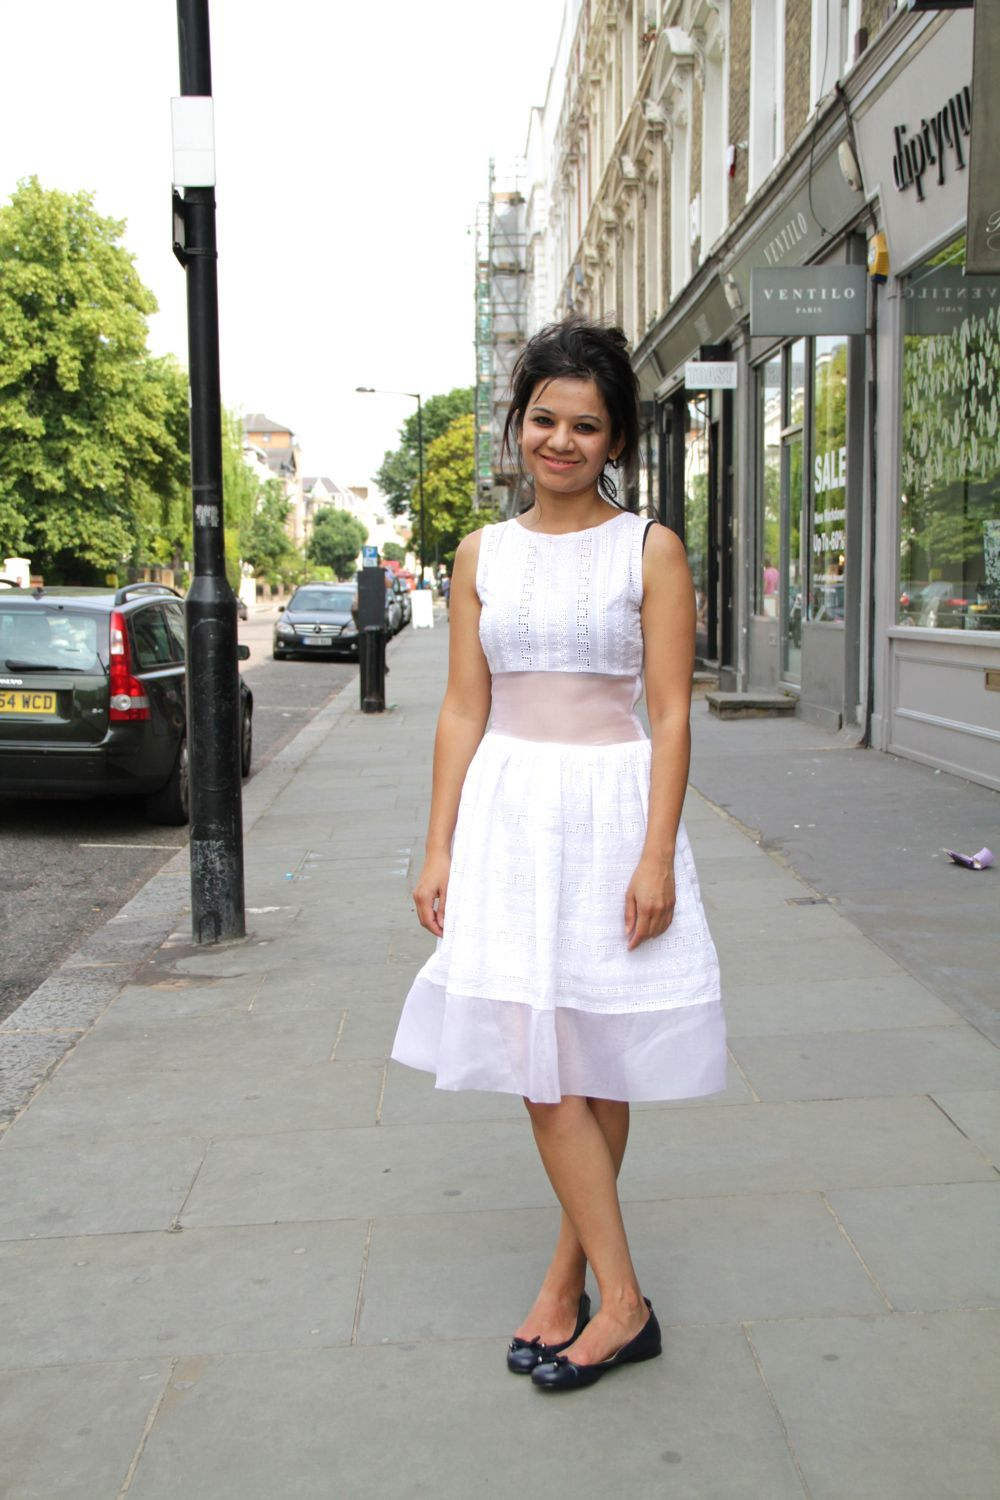 It doesn't get more summery than a white dress.